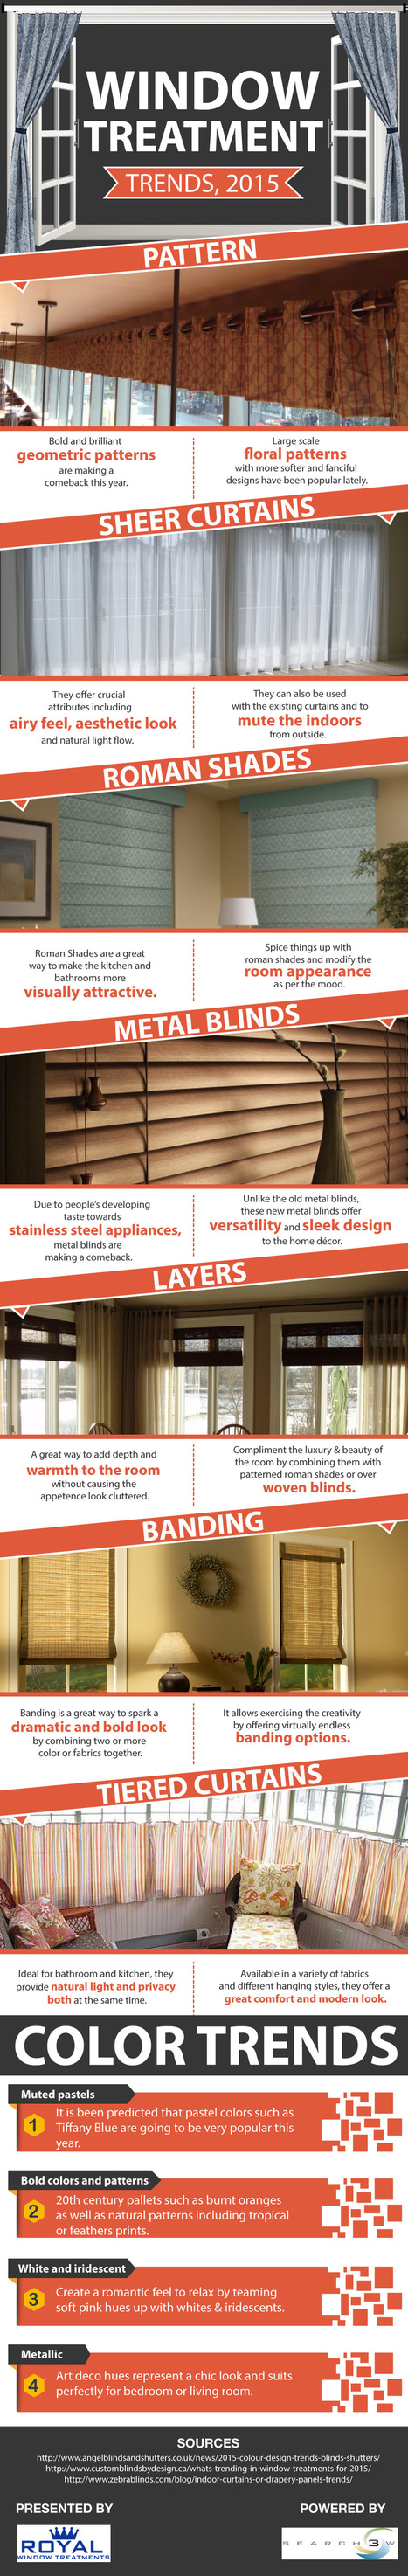 Latest Trends Of Window Treatments In 2015 Inf